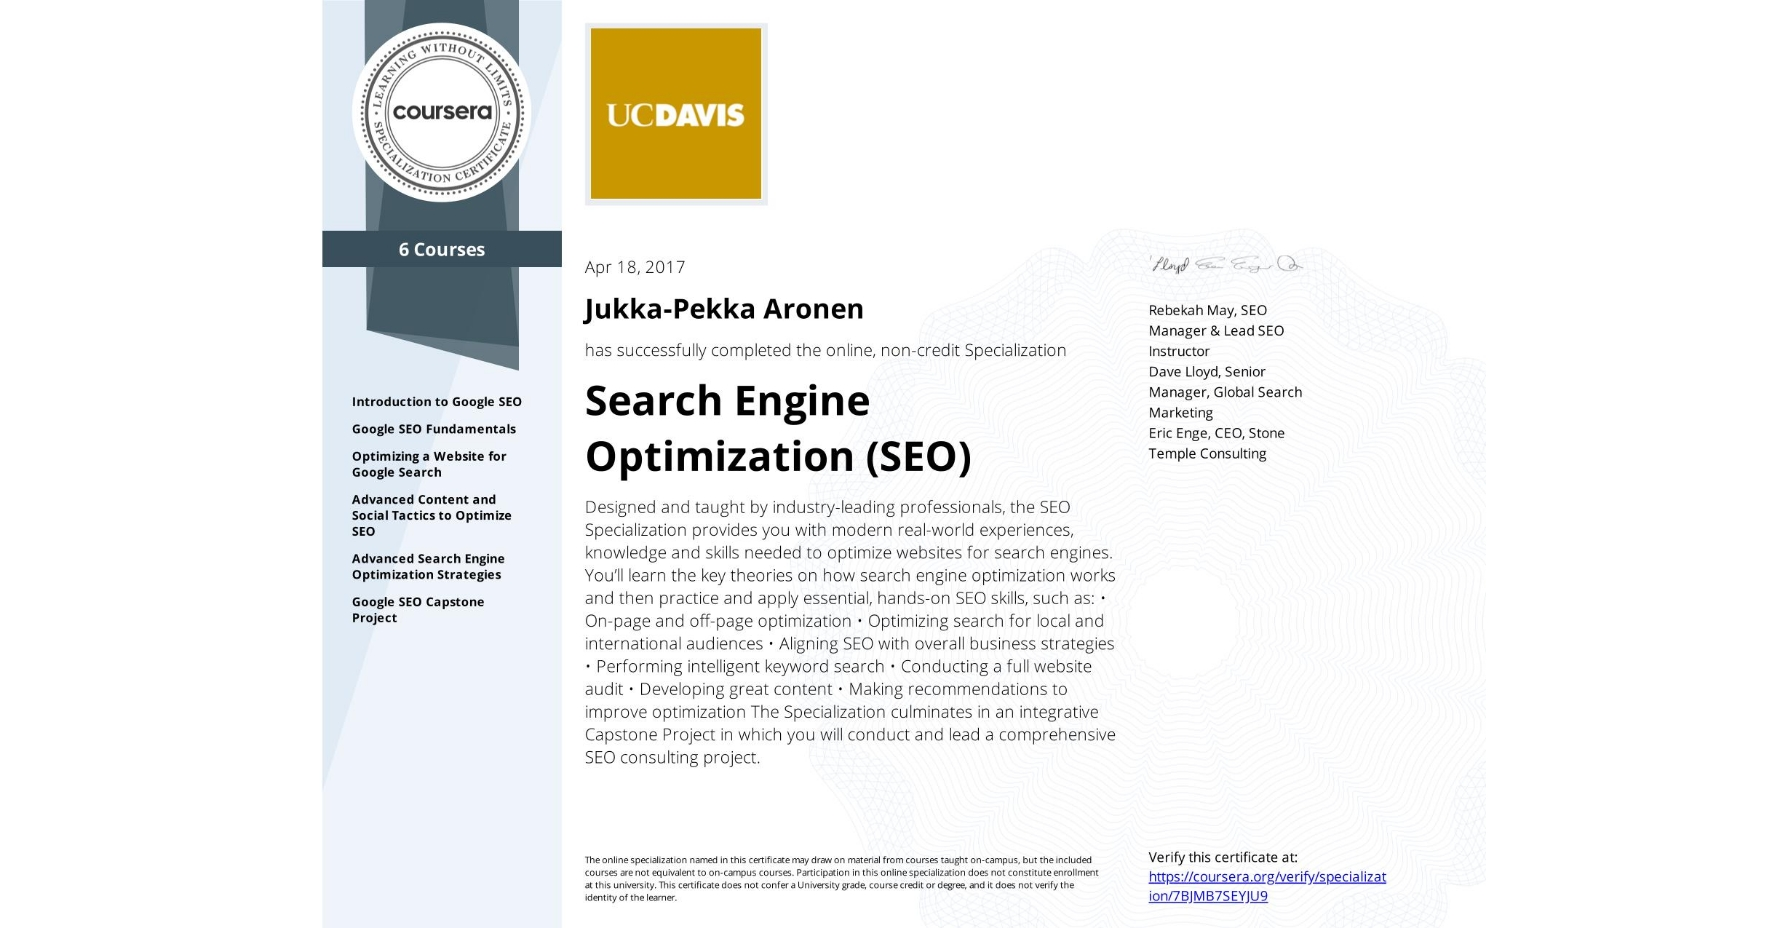 View certificate for Jukka-Pekka Aronen, Search Engine Optimization (SEO), offered through Coursera. Designed and taught by industry-leading professionals, the SEO Specialization provides you with modern real-world experiences, knowledge and skills needed to optimize websites for search engines.  You'll learn the key theories on how search engine optimization works and then practice and apply essential, hands-on SEO skills, such as:  • On-page and off-page optimization • Optimizing search for local and international audiences • Aligning SEO with overall business strategies • Performing intelligent keyword search • Conducting a full website audit • Developing great content • Making recommendations to improve optimization  The Specialization culminates in an integrative Capstone Project in which you will conduct and lead a comprehensive SEO consulting project.